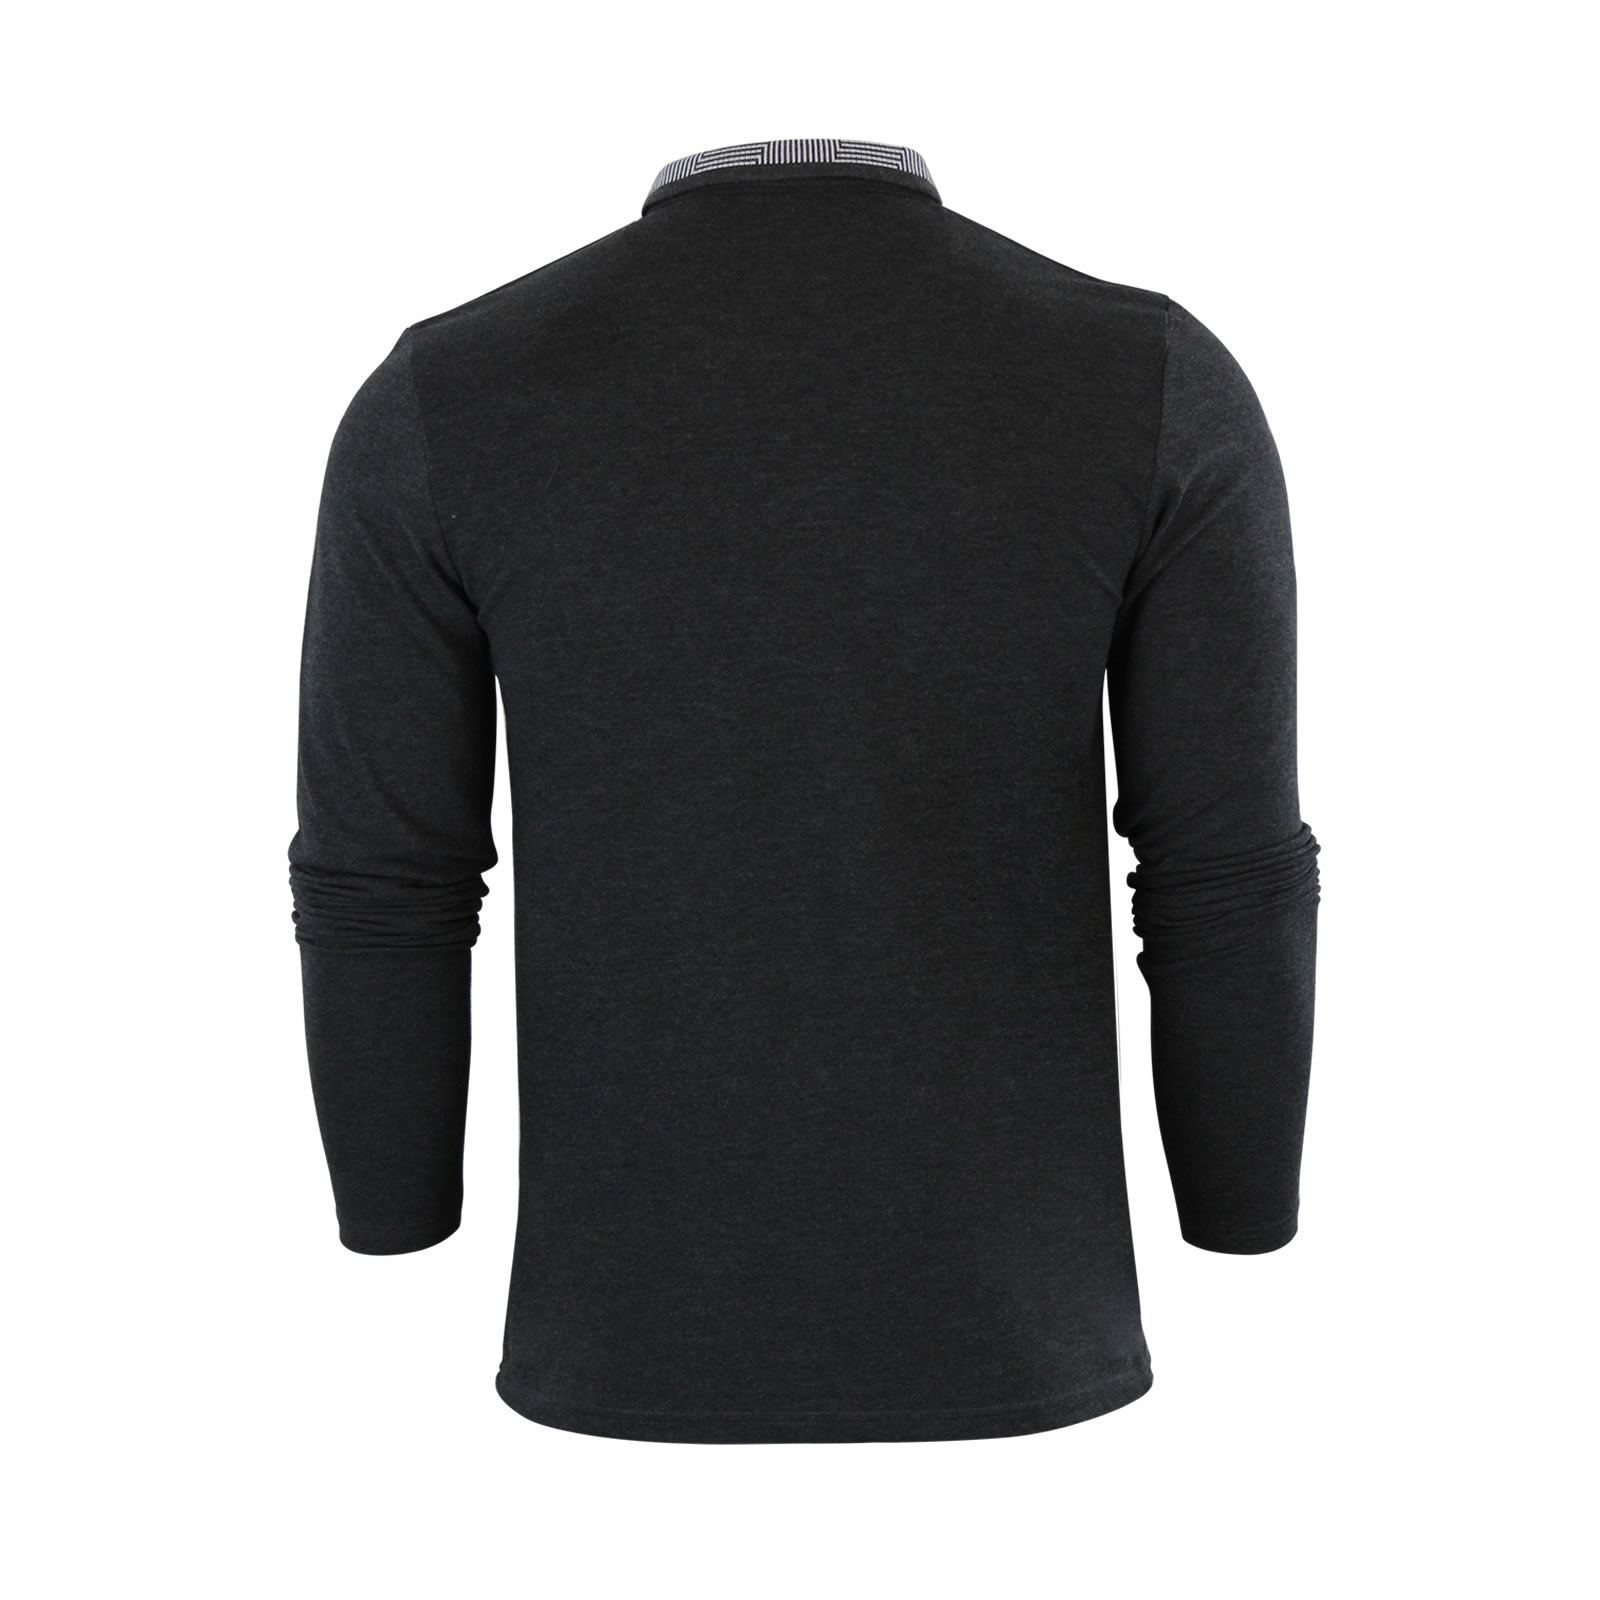 Mens-Polo-Shirt-Brave-Soul-Long-Sleeve-Collared-Top-In-Various-Styles thumbnail 18